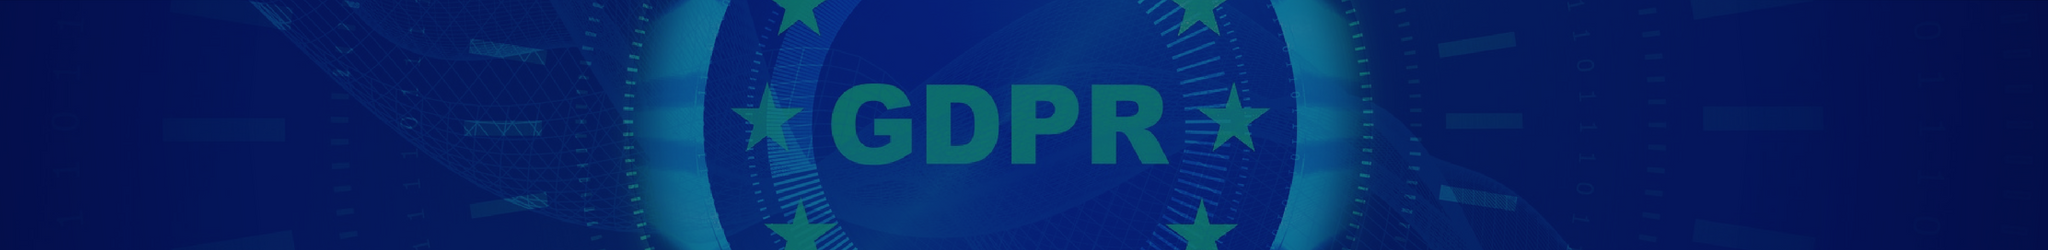 Update in the Vaultastic Privacy Policy in line with GDPR